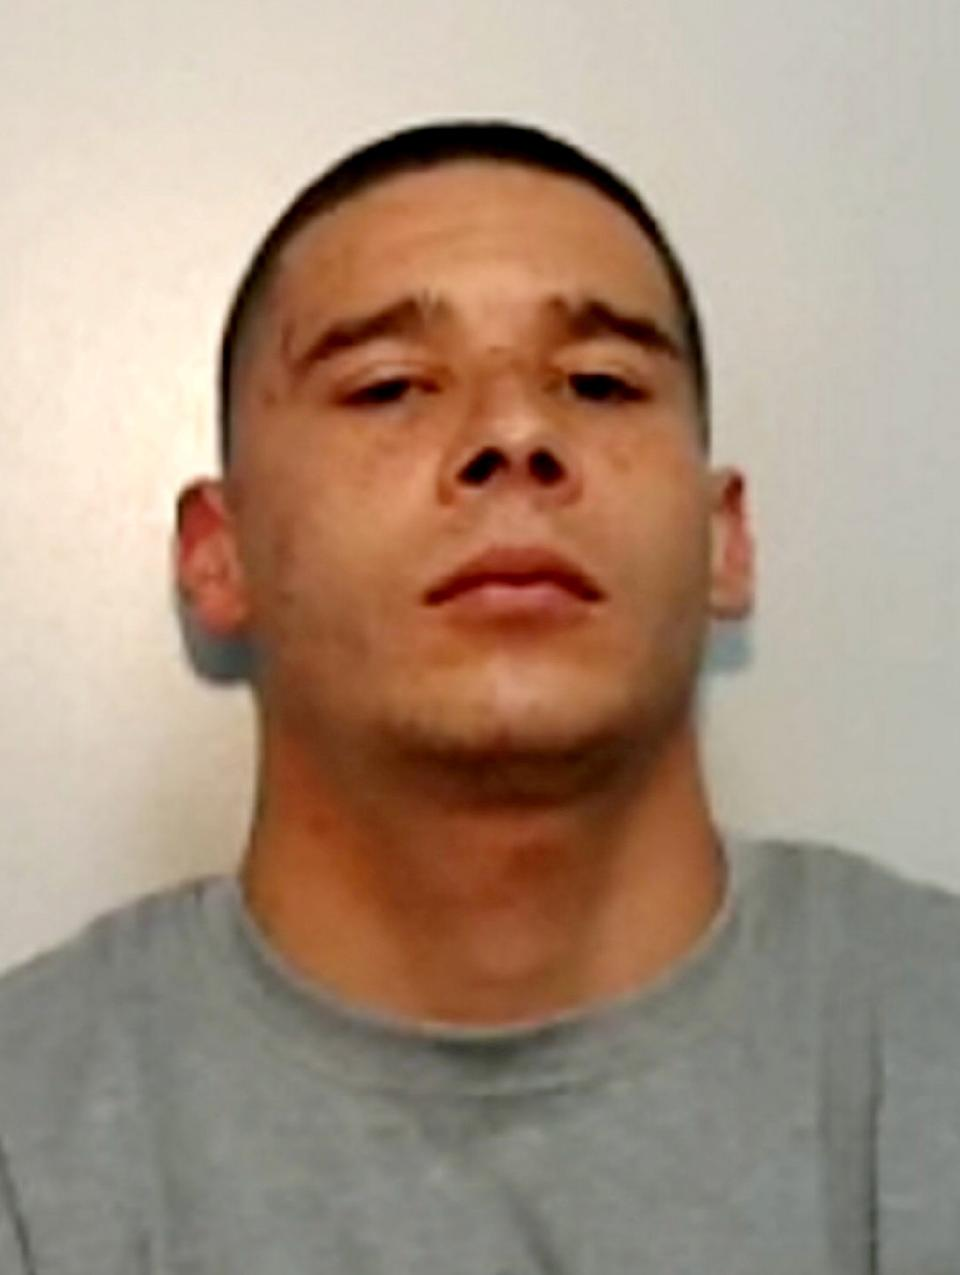 Lewis Peake, 30, recruited three other offenders to help carry out the assault assault Steven, aged 34, and attempted to steal his Rolex watch worth an estimated £13,000.  During the incident shortly before 7.30pm that evening, Steven suffered unsurvivable head injuries and was sadly pronounced dead at the scene in the gardens of Wigan Parish Church a short time later.